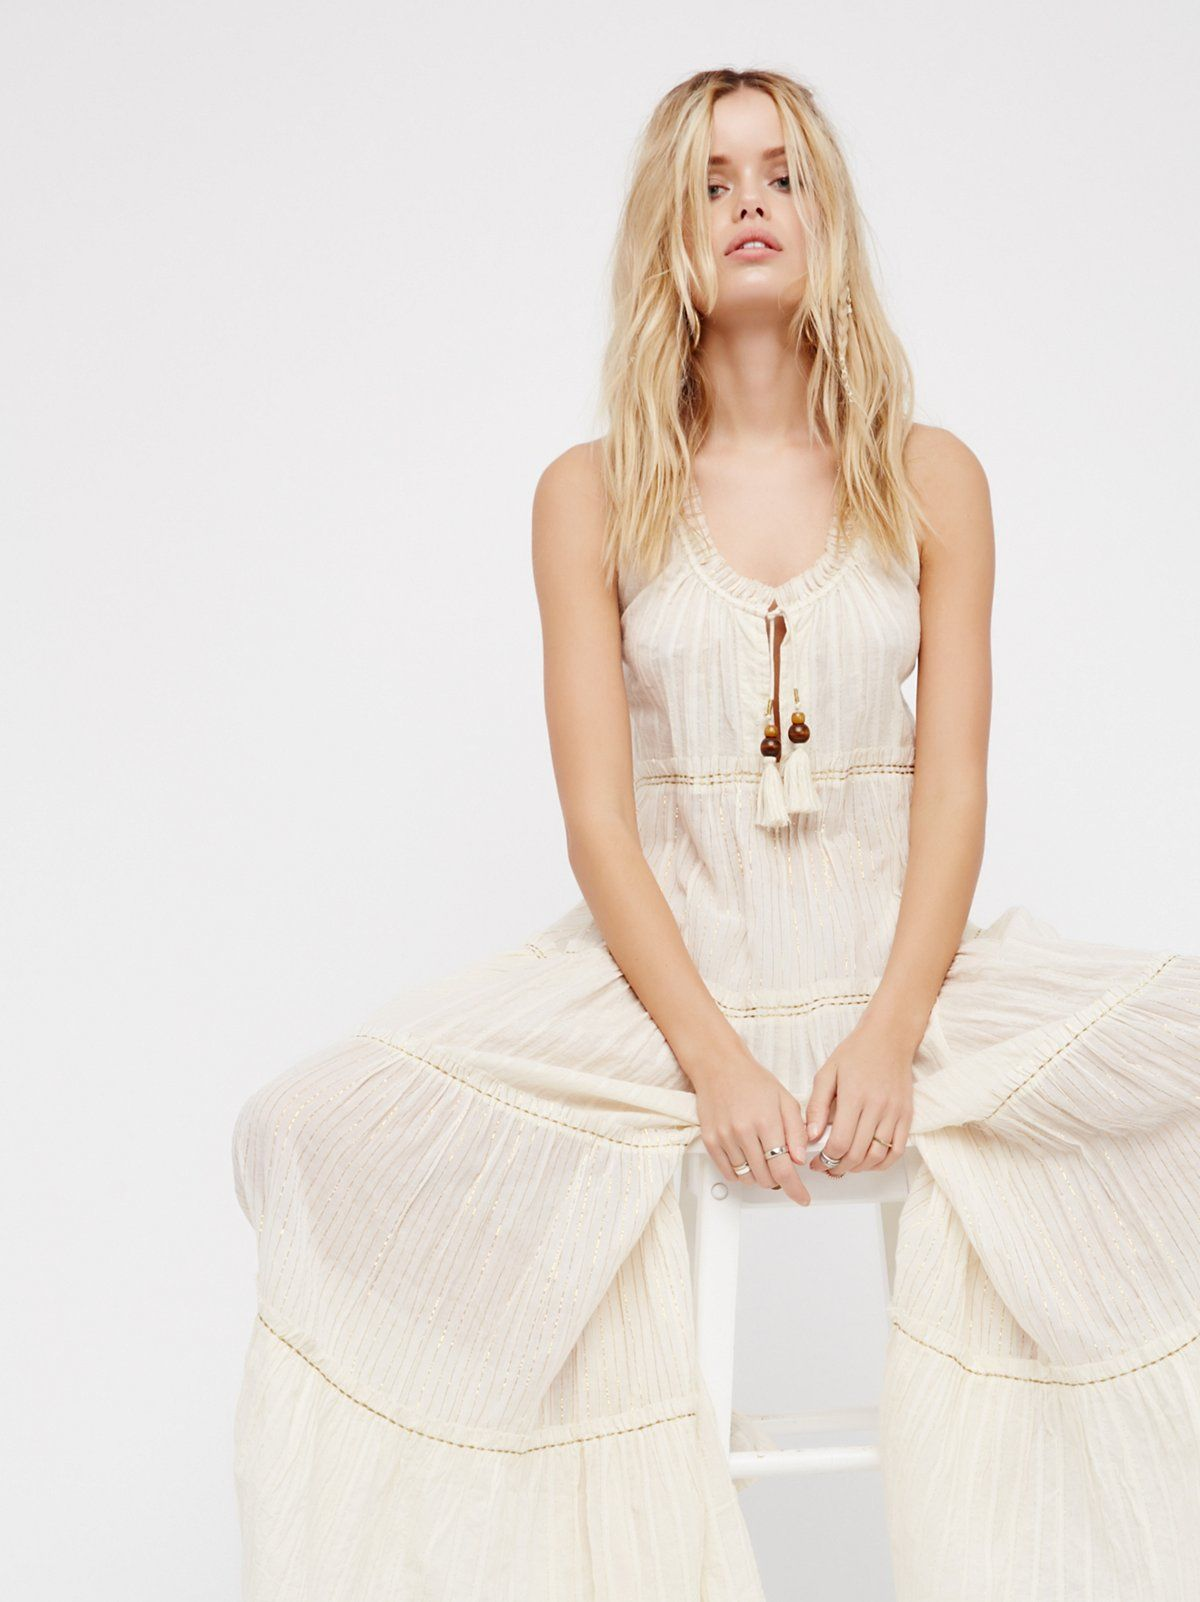 c33f468096 Beach Bum Jumpsuit | Ethereal jumpsuit in a lightweight semi-sheer fabric.  * Pieced with metallic thread * Plunging V-neck * Adjustable tie detailing  at the ...